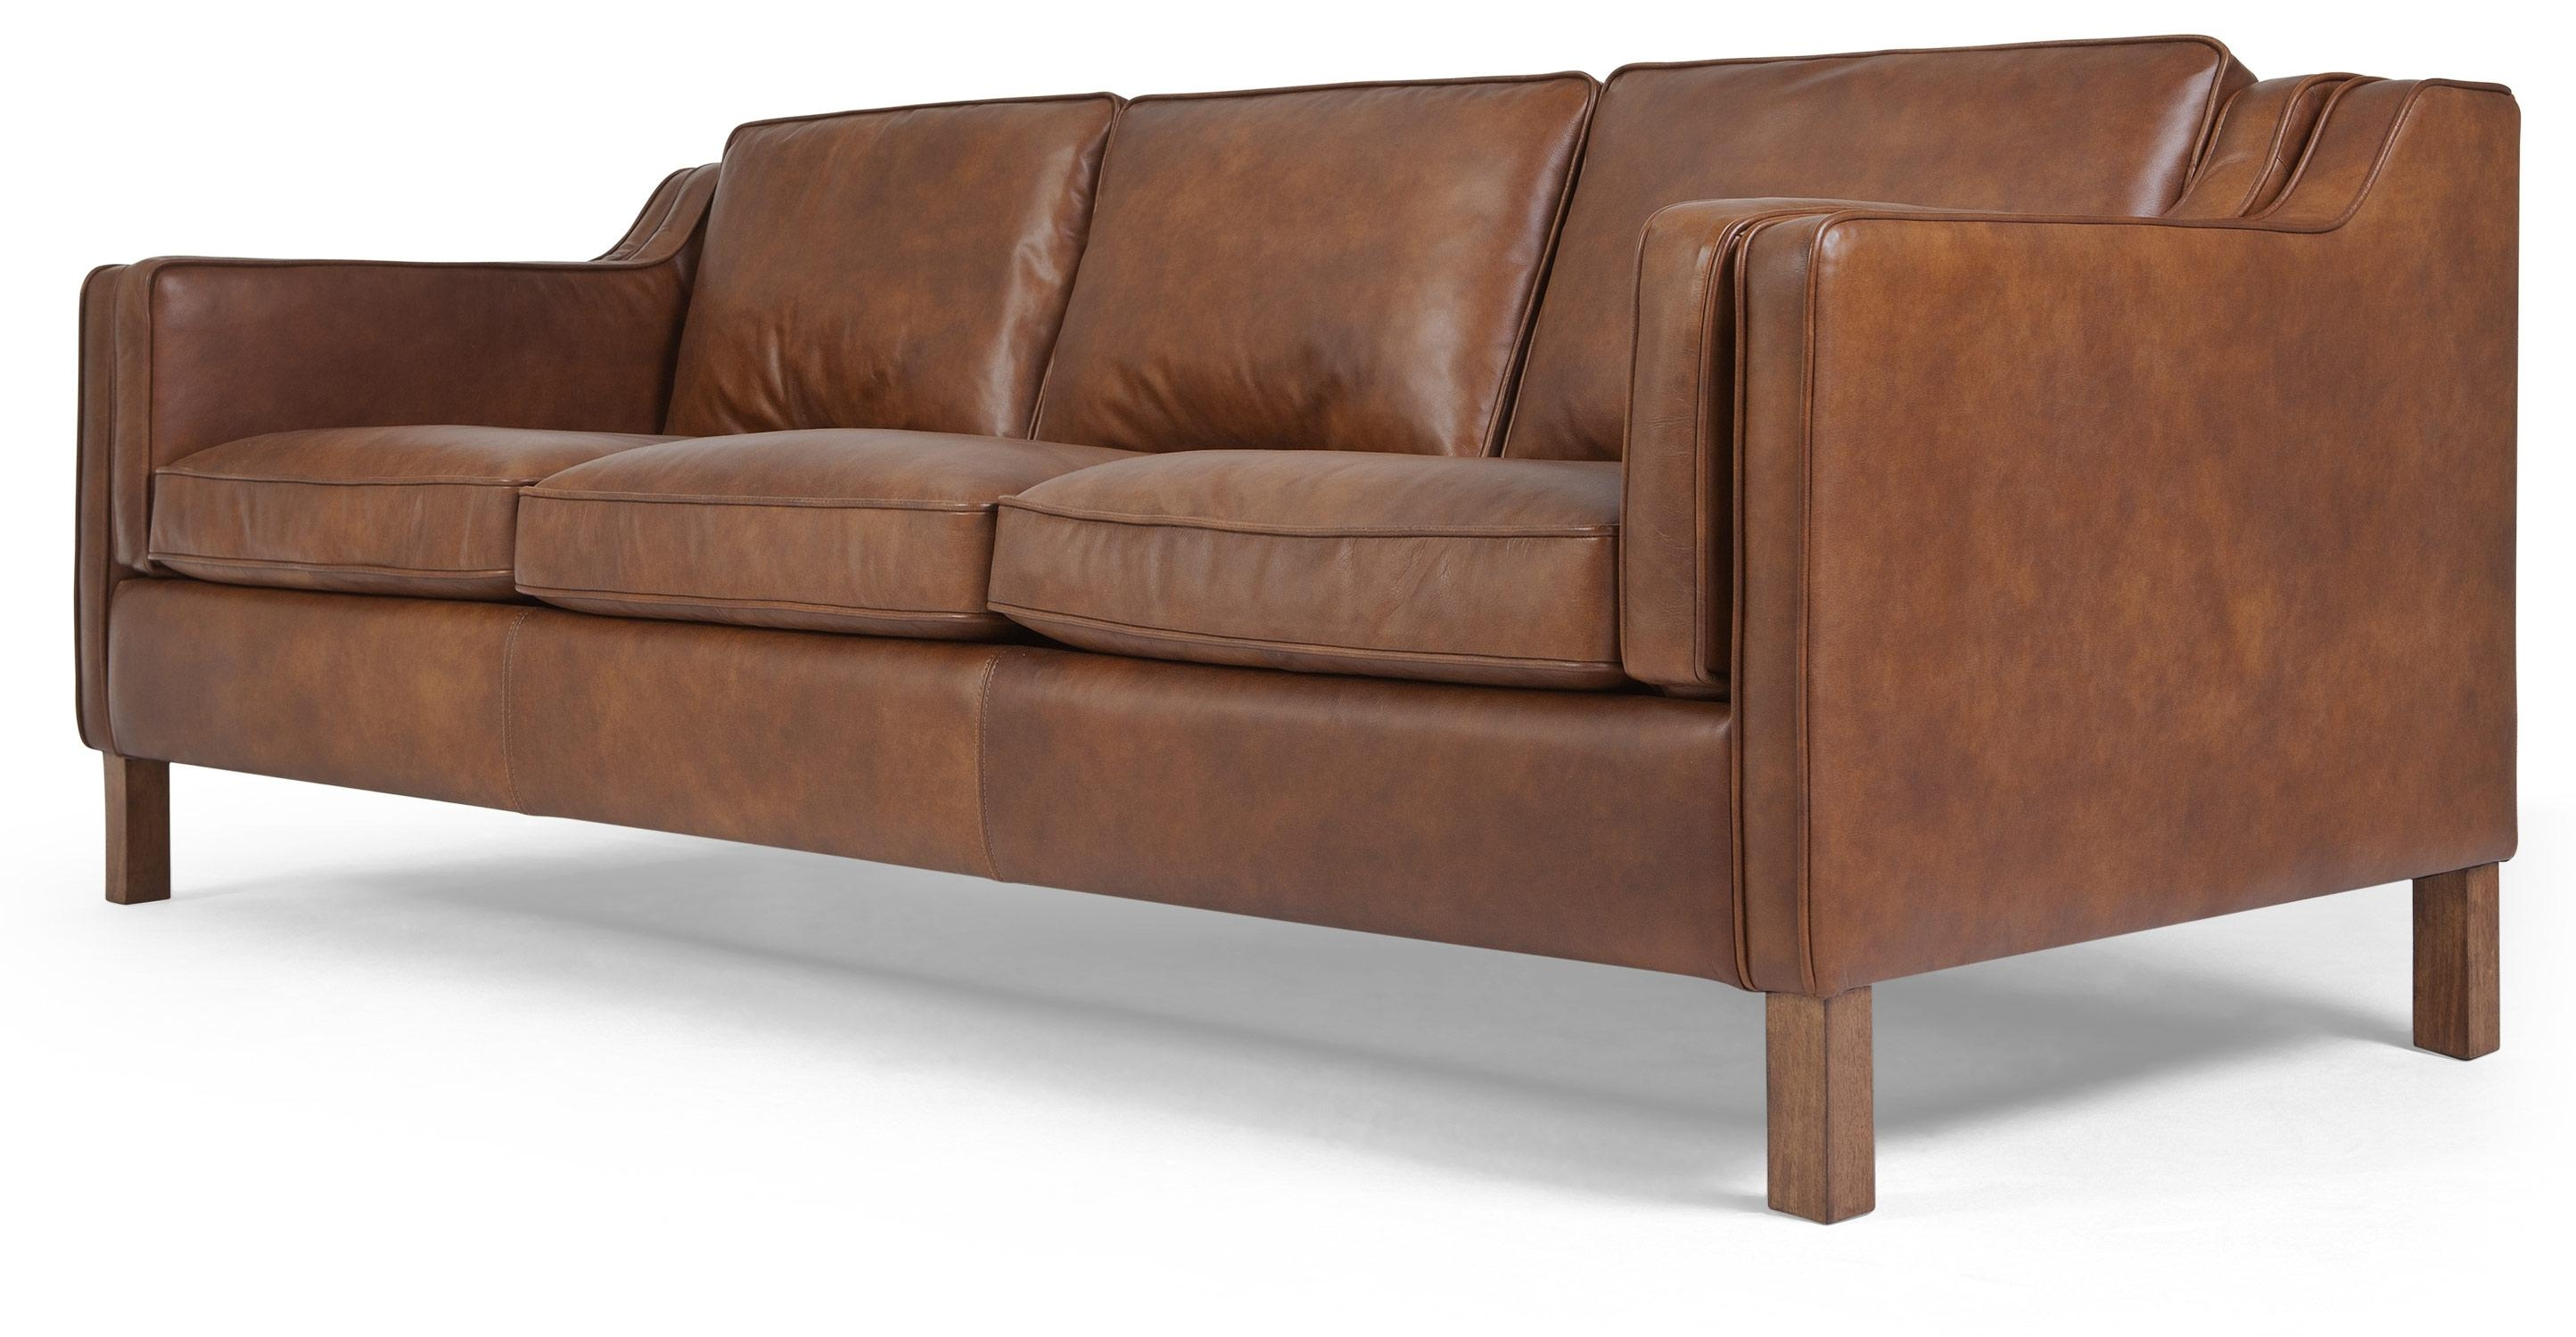 Sofas Center : 45 Fascinating Mid Century Modern Leather Sofa Regarding Mid Century Modern Leather Sectional (View 10 of 20)